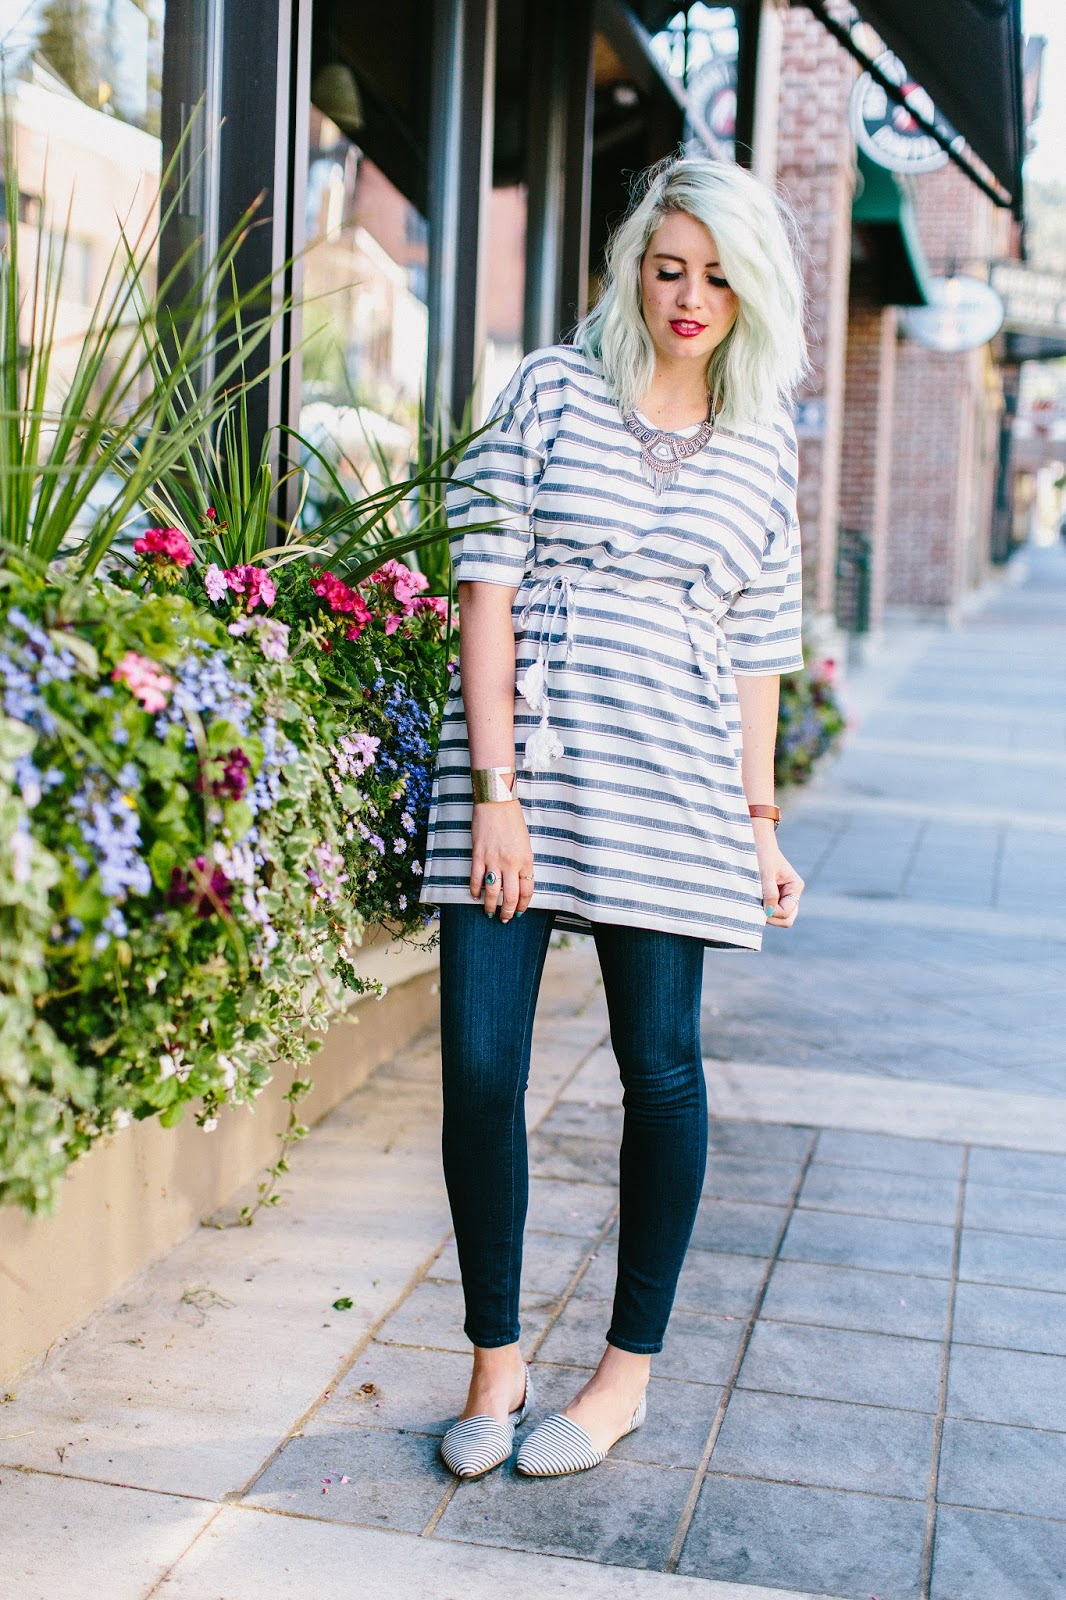 Paige Denim, Utah Fashion Blogger, Summer Outfit